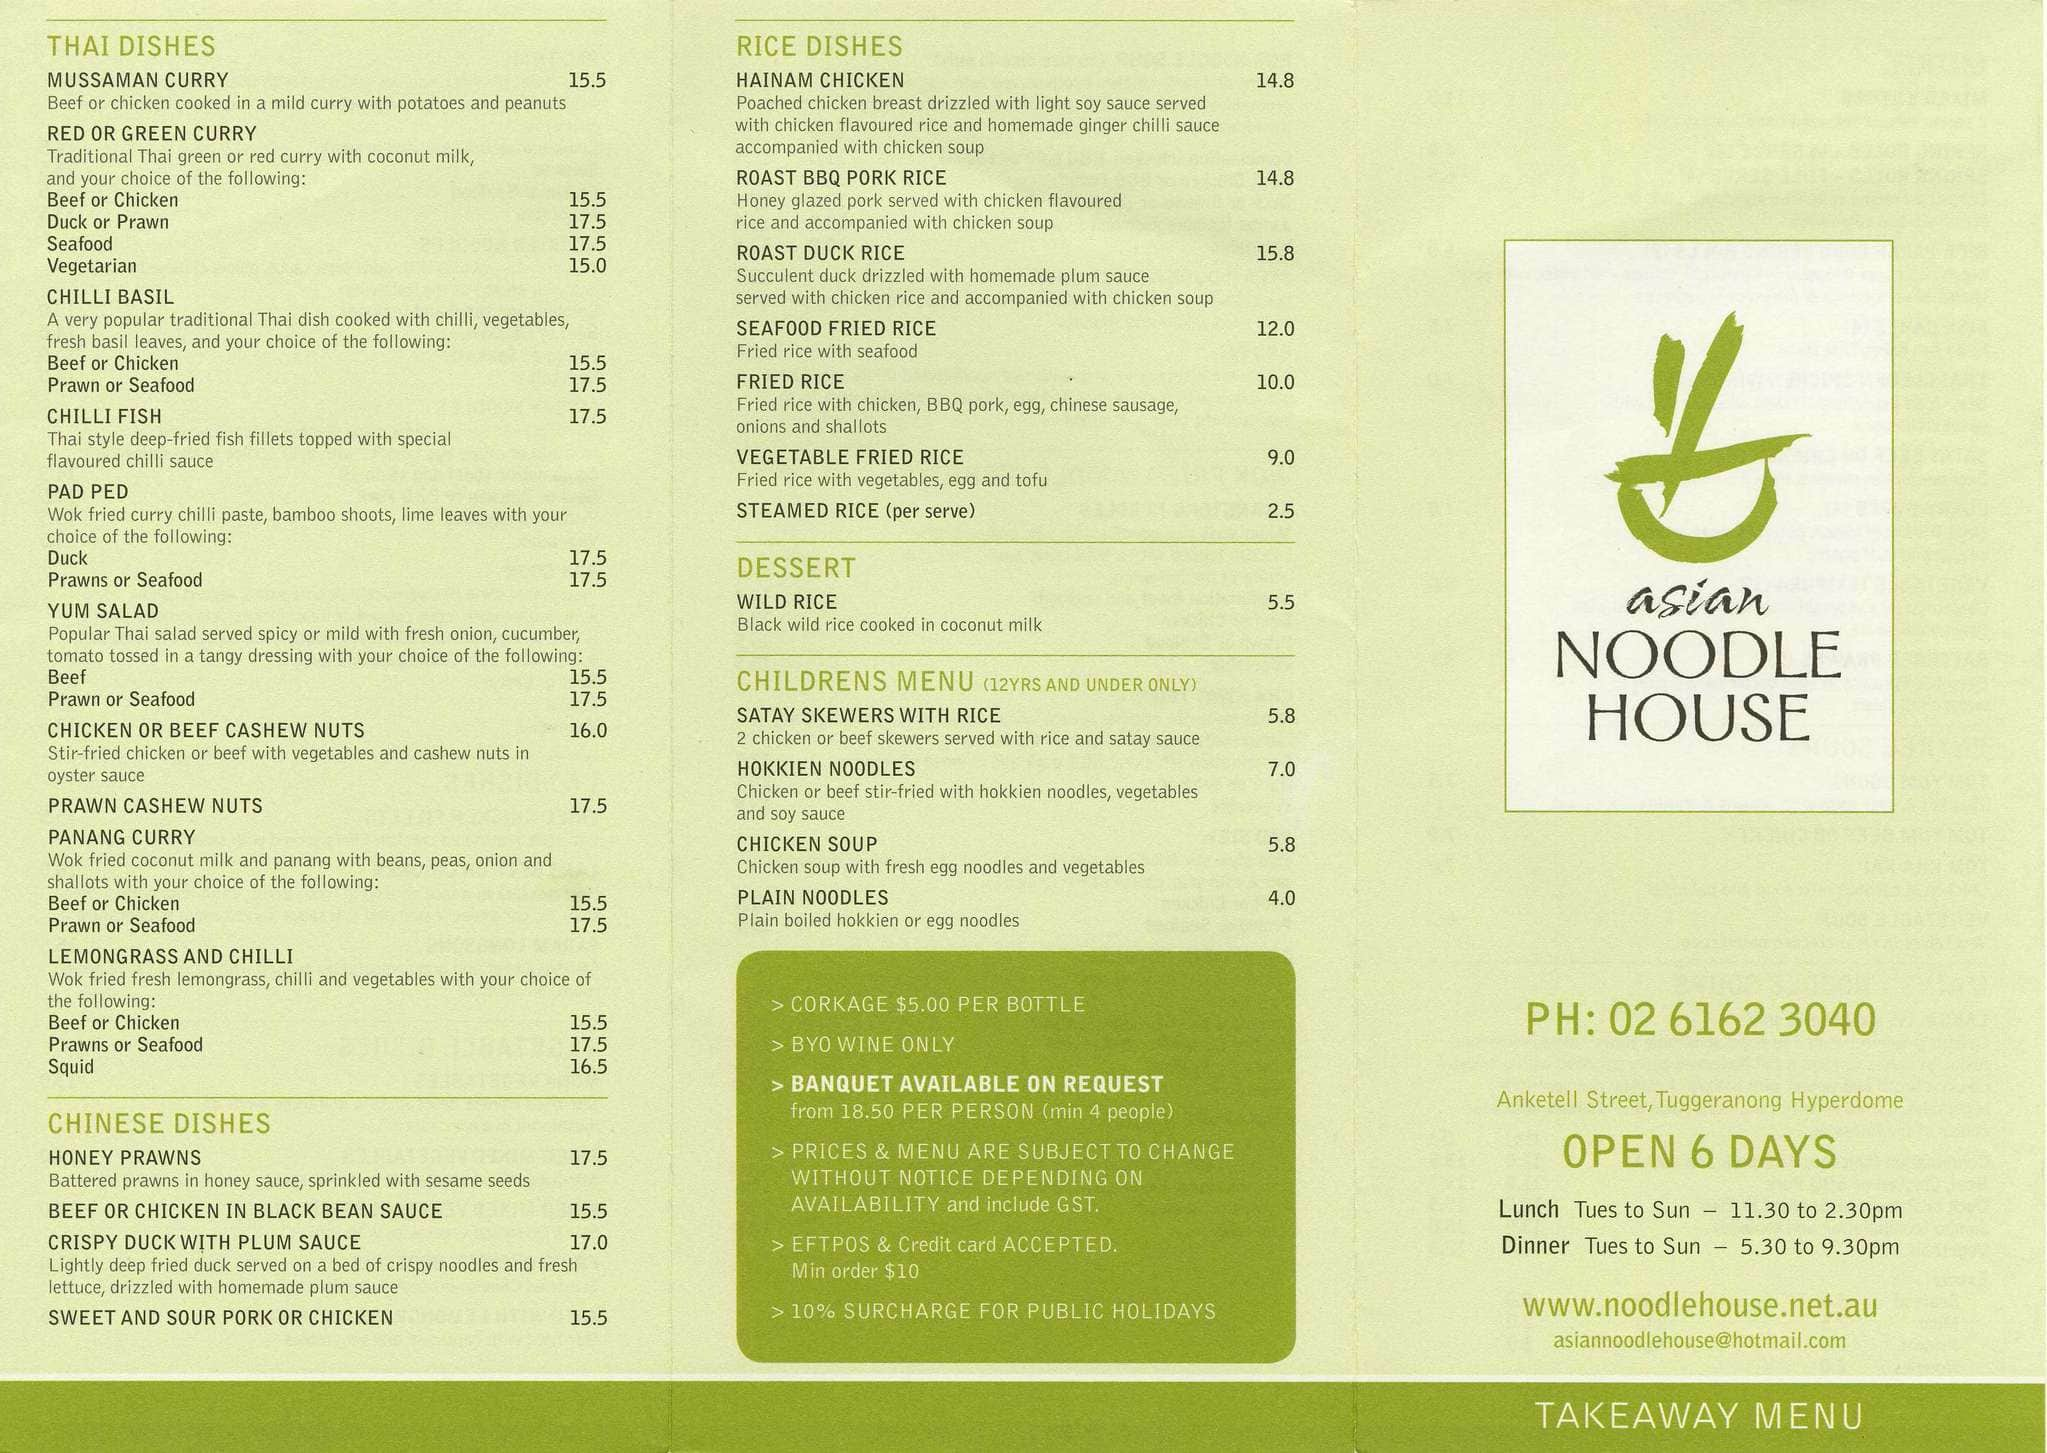 Asian Noodle House Menu Menu For Asian Noodle House Greenway Act